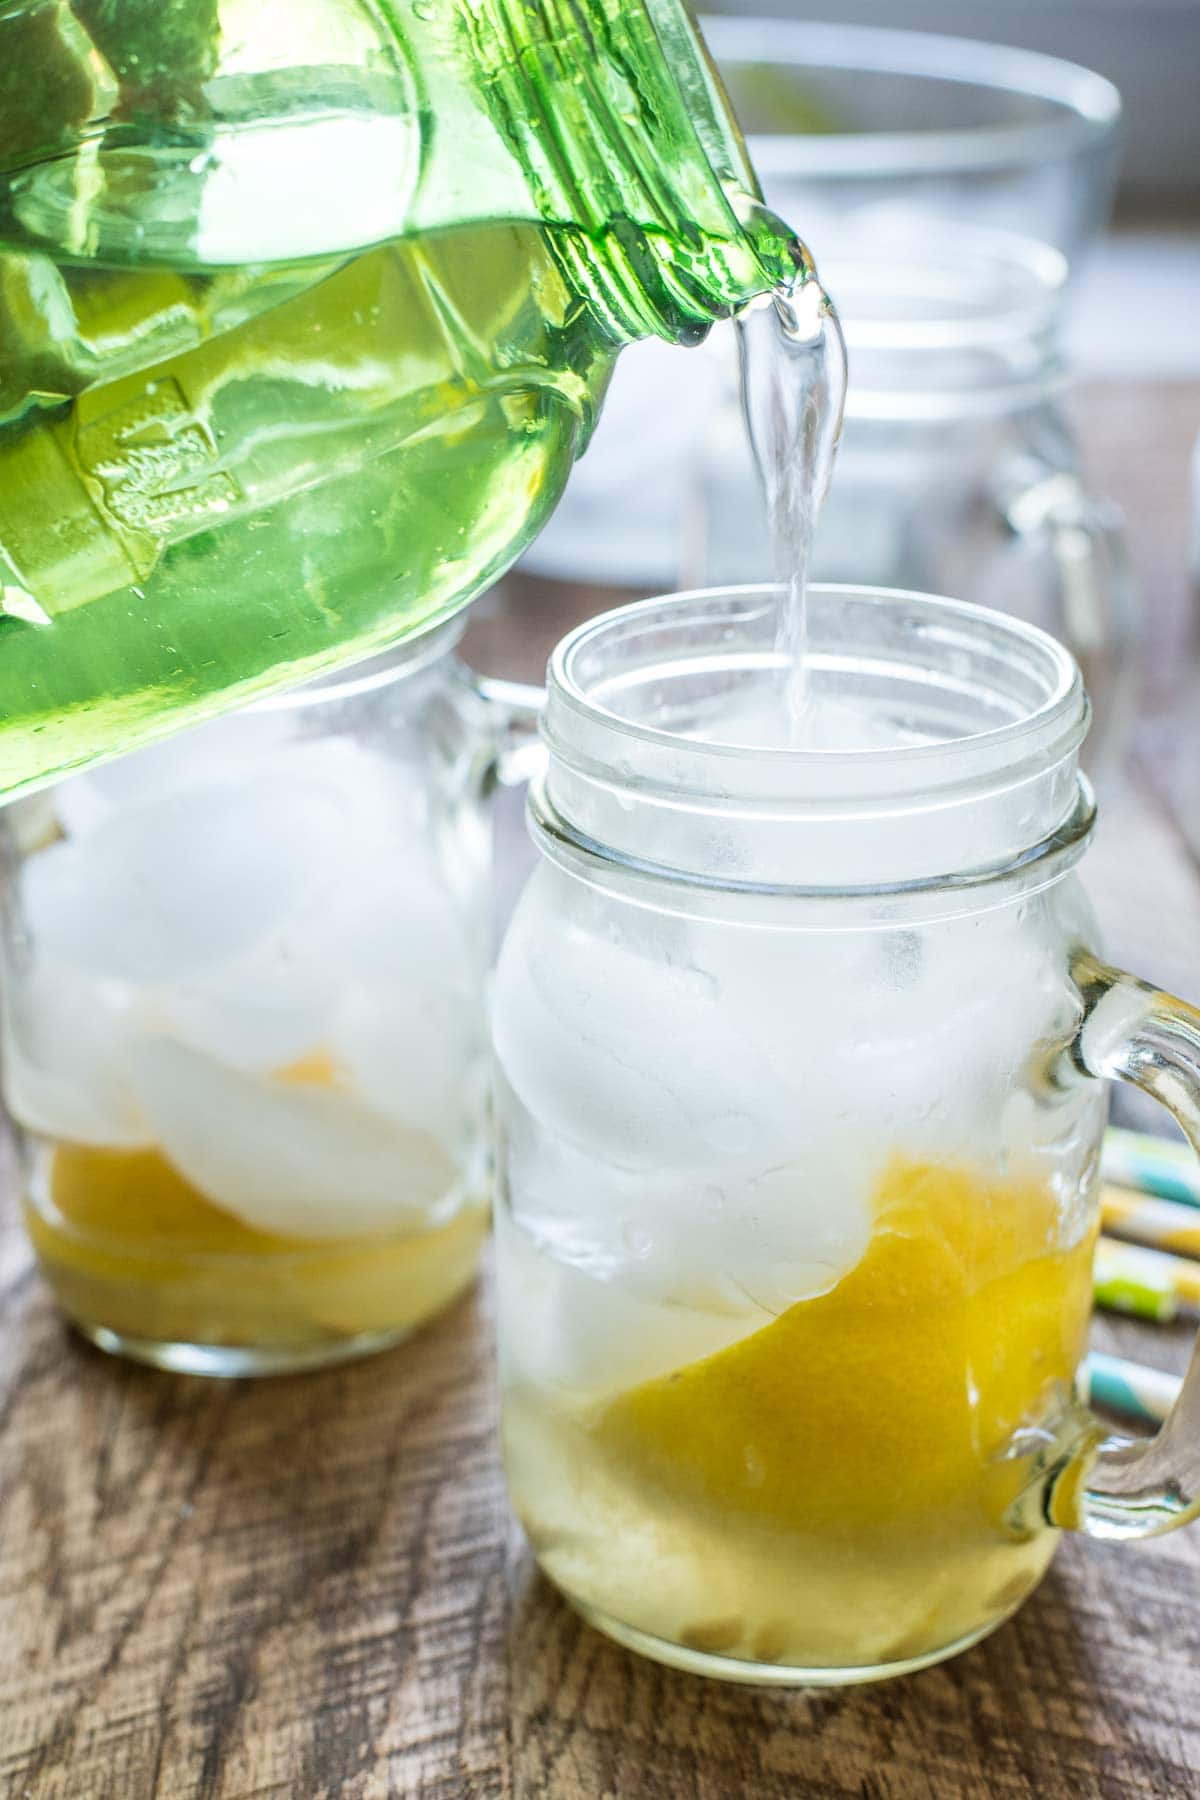 This Homemade Lemon Shake Up Recipe is so refreshing and easy to make!